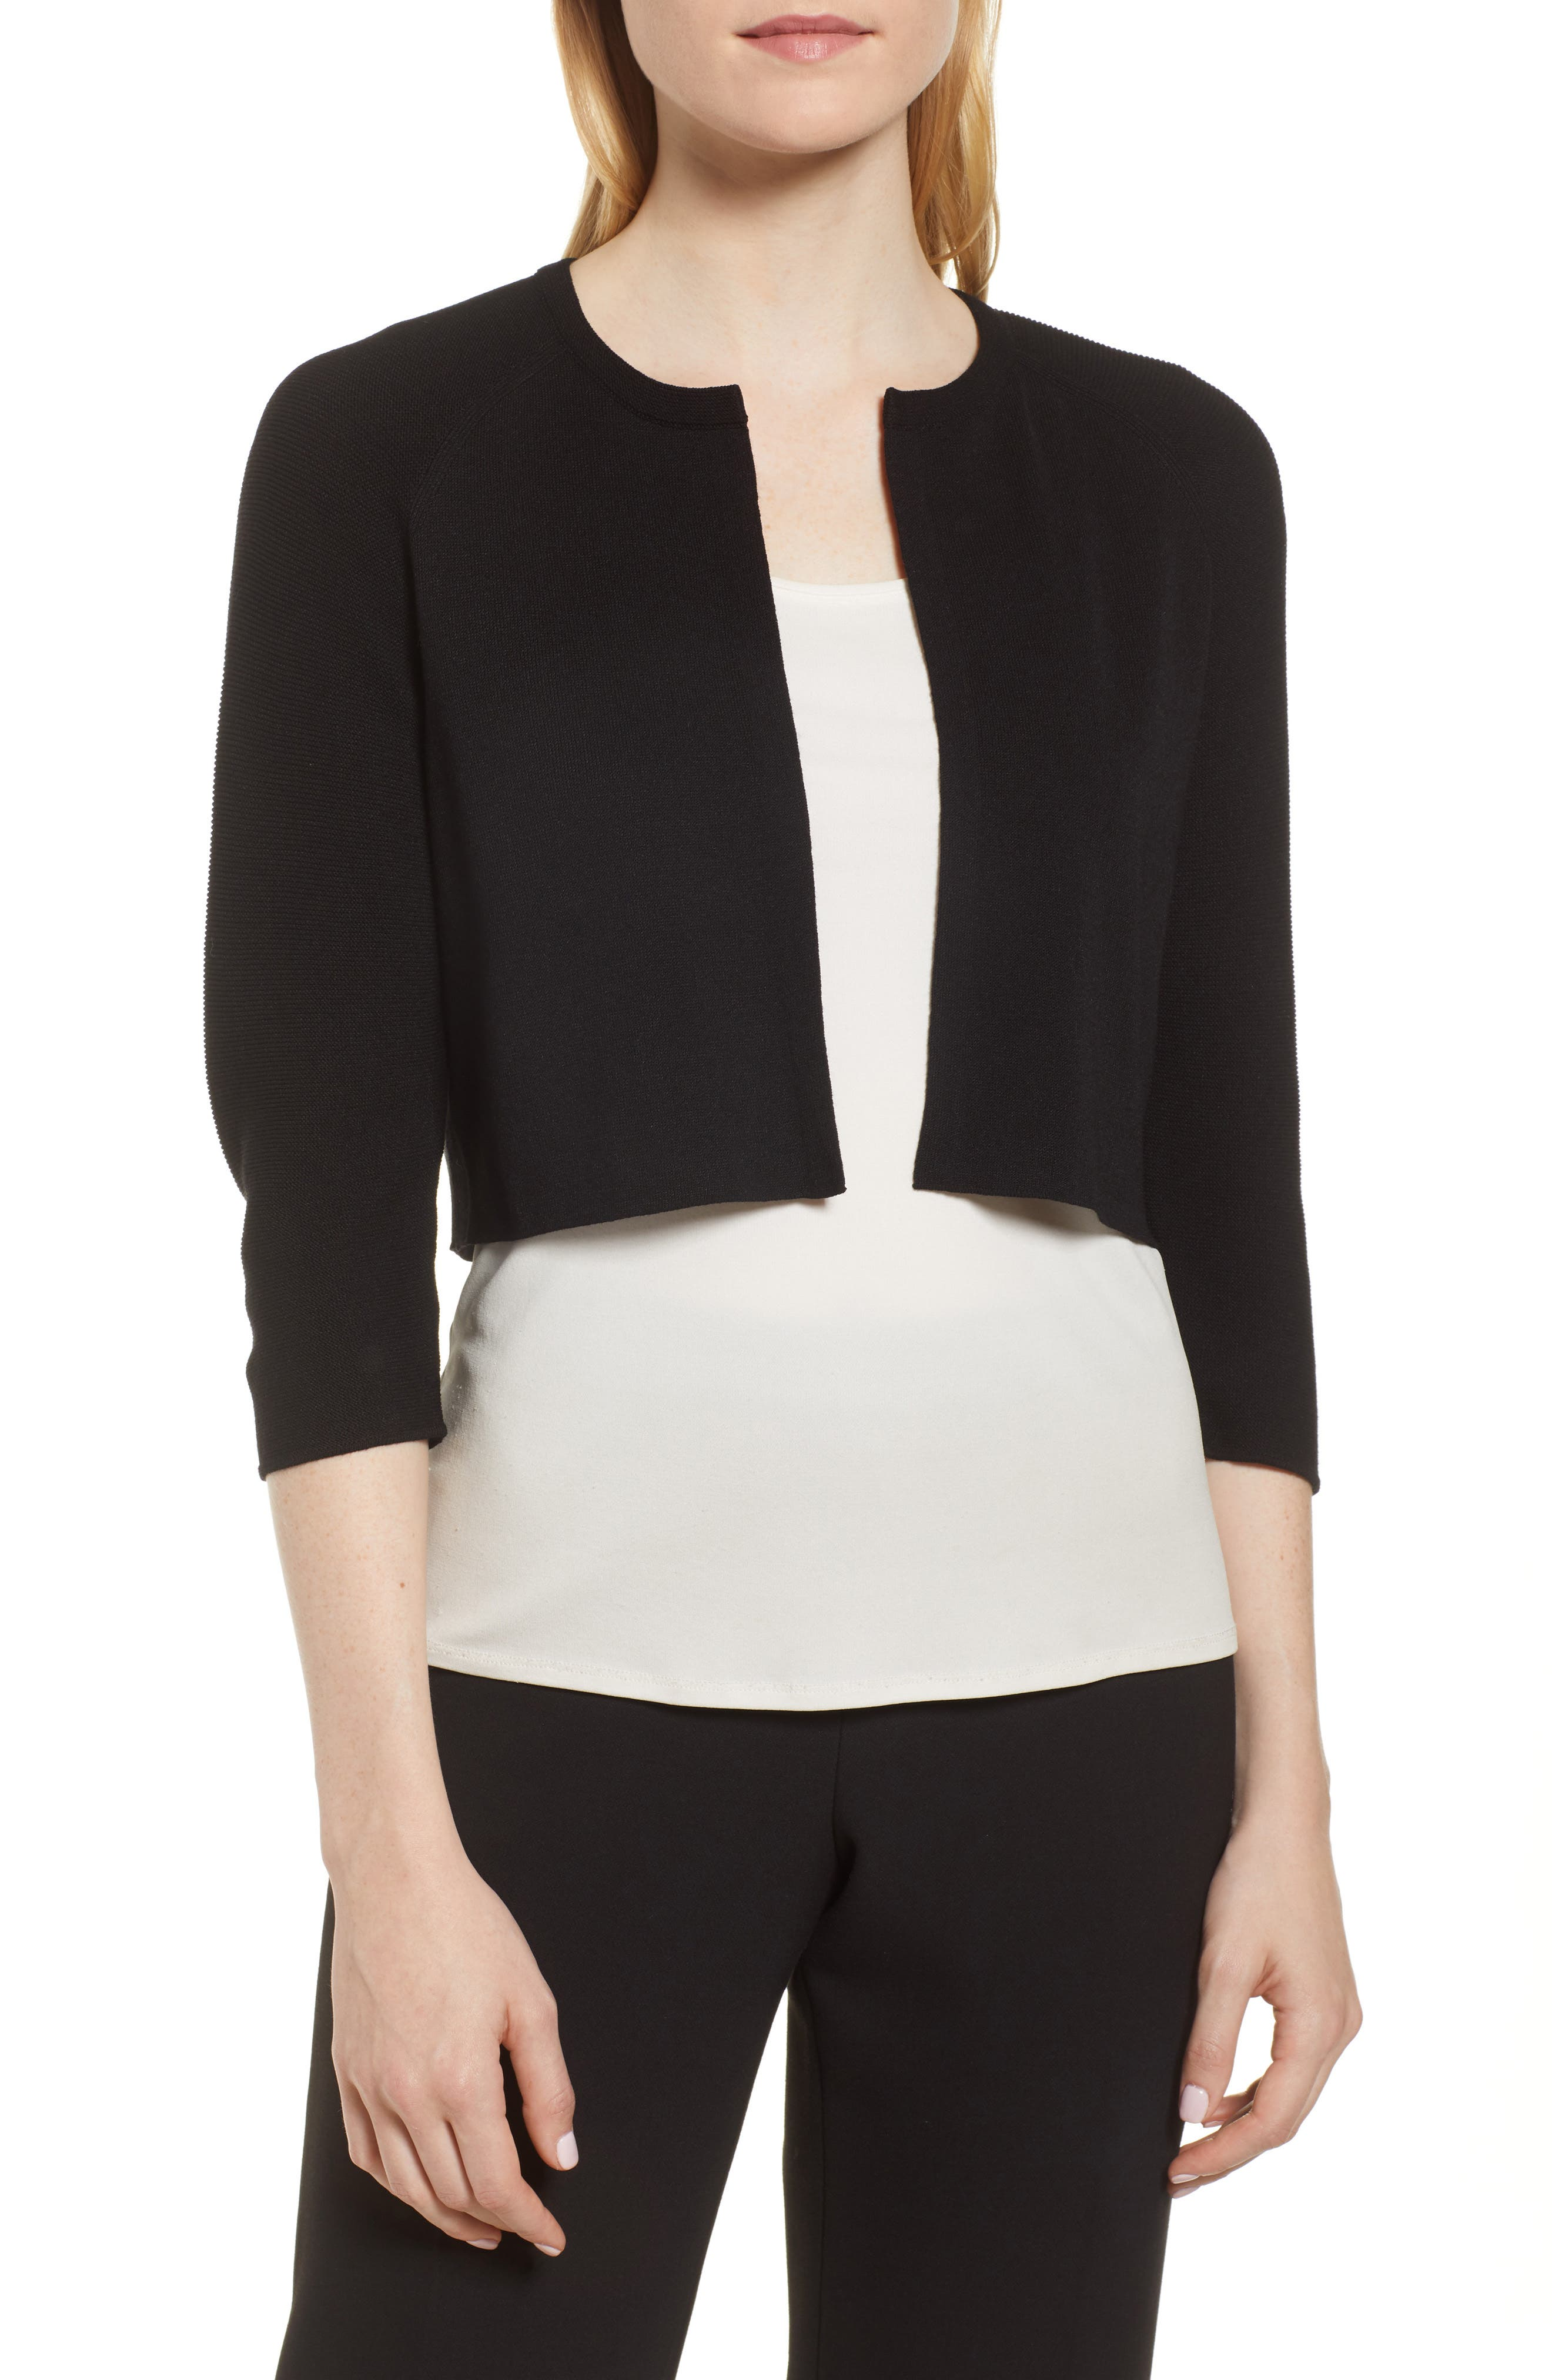 Fatildi Bolero Cardigan,                         Main,                         color, BLACK